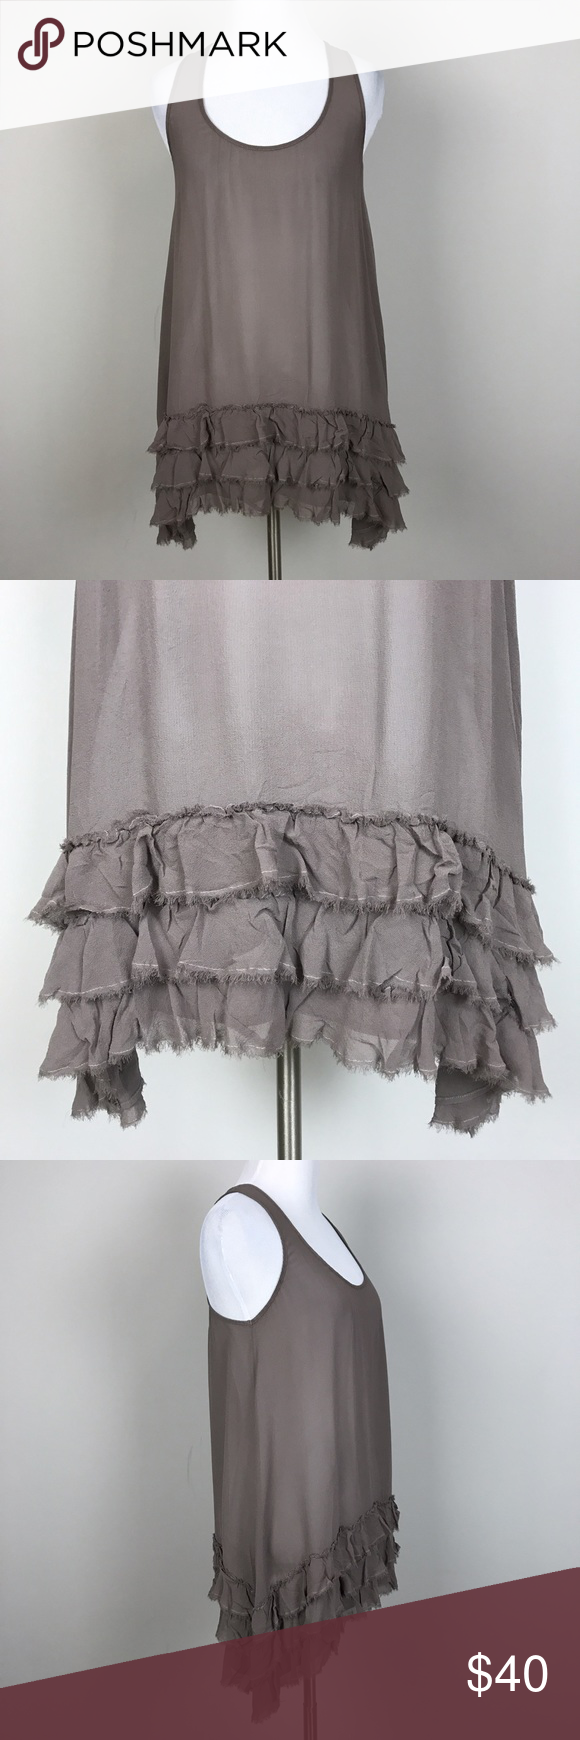 "[Anthropologie] Silk Ruffle Trapeze Tunic Top Chic Sleeveless scoop neck Tunic tank. Sheer 100% silk with ruffled layer hem. Draped longer on the sides. A great layering piece. By Odille from Anthropologie.  🔹Pit to Pit: 15""  🔹Length: 28"" - 32"" 🔹Condition: Excellent pre-owned condition.  *WW43 Anthropologie Tops Tunics"